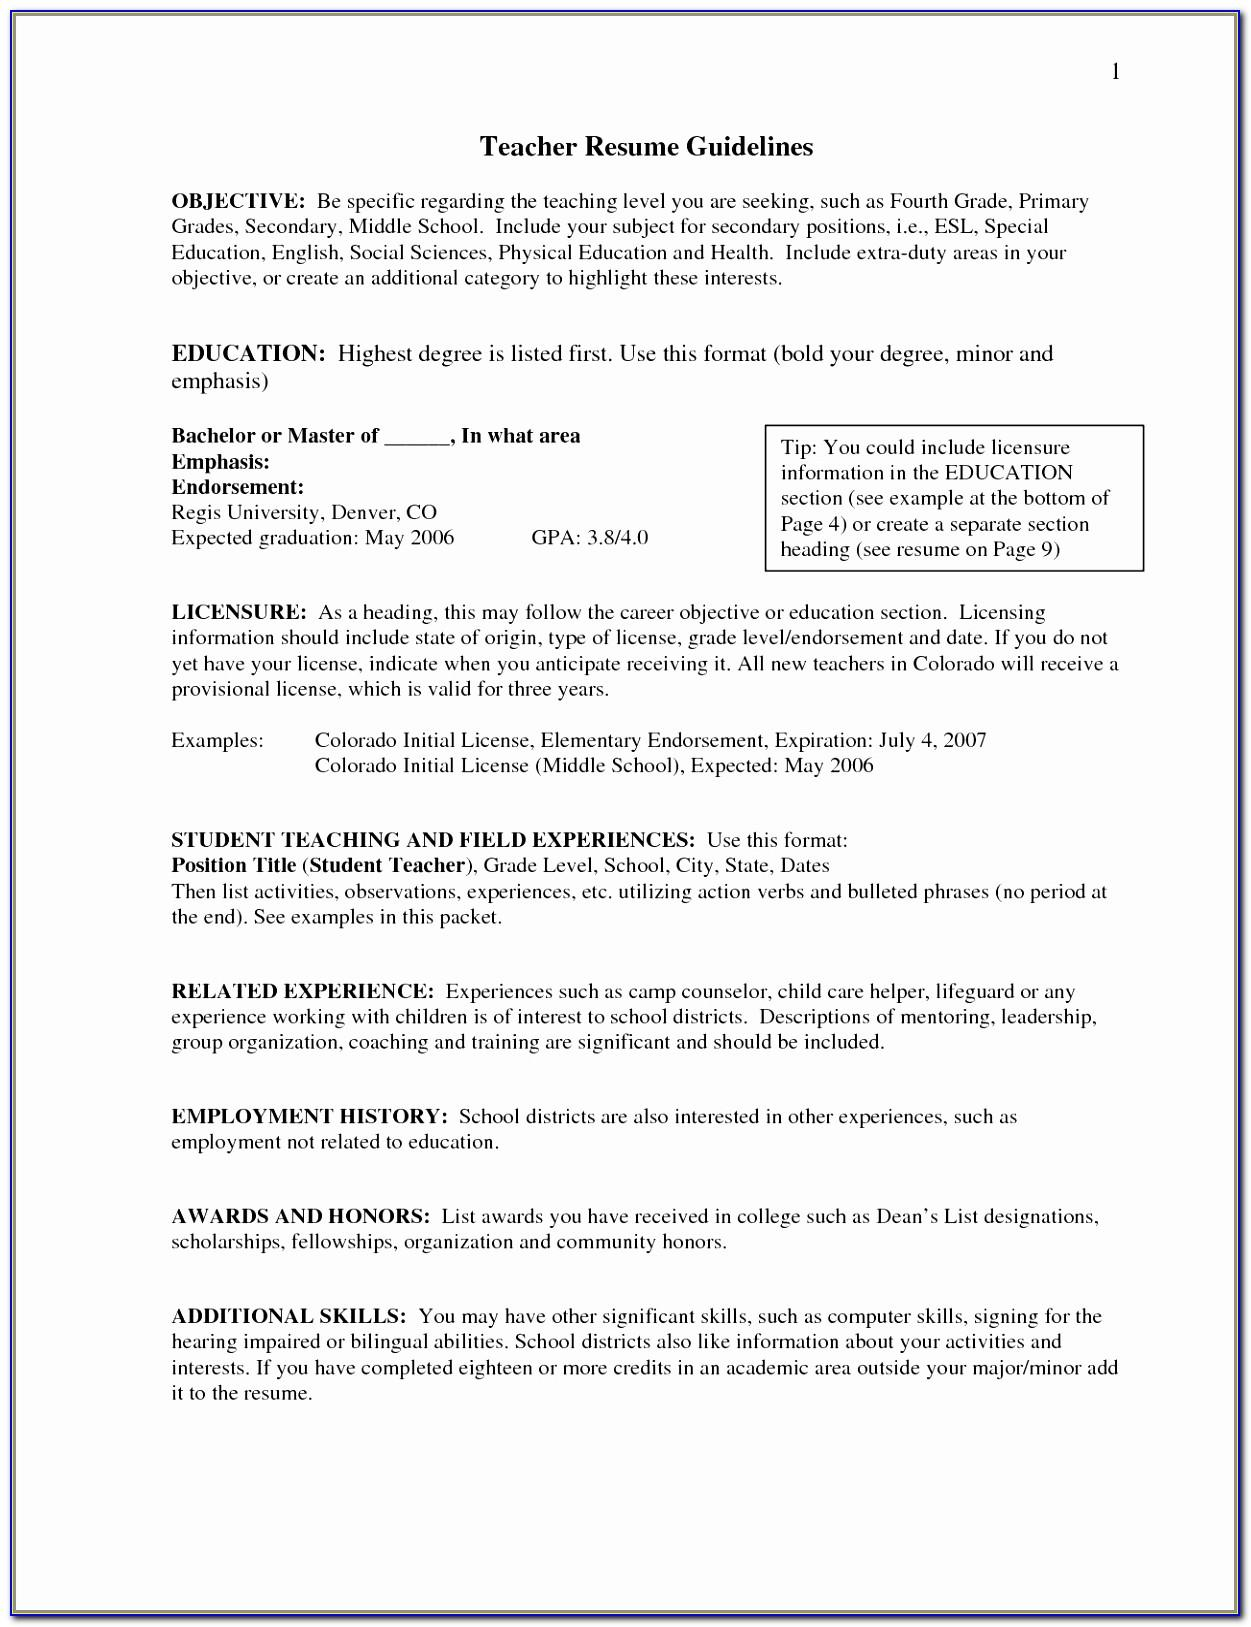 Resume Format Docx Free Download